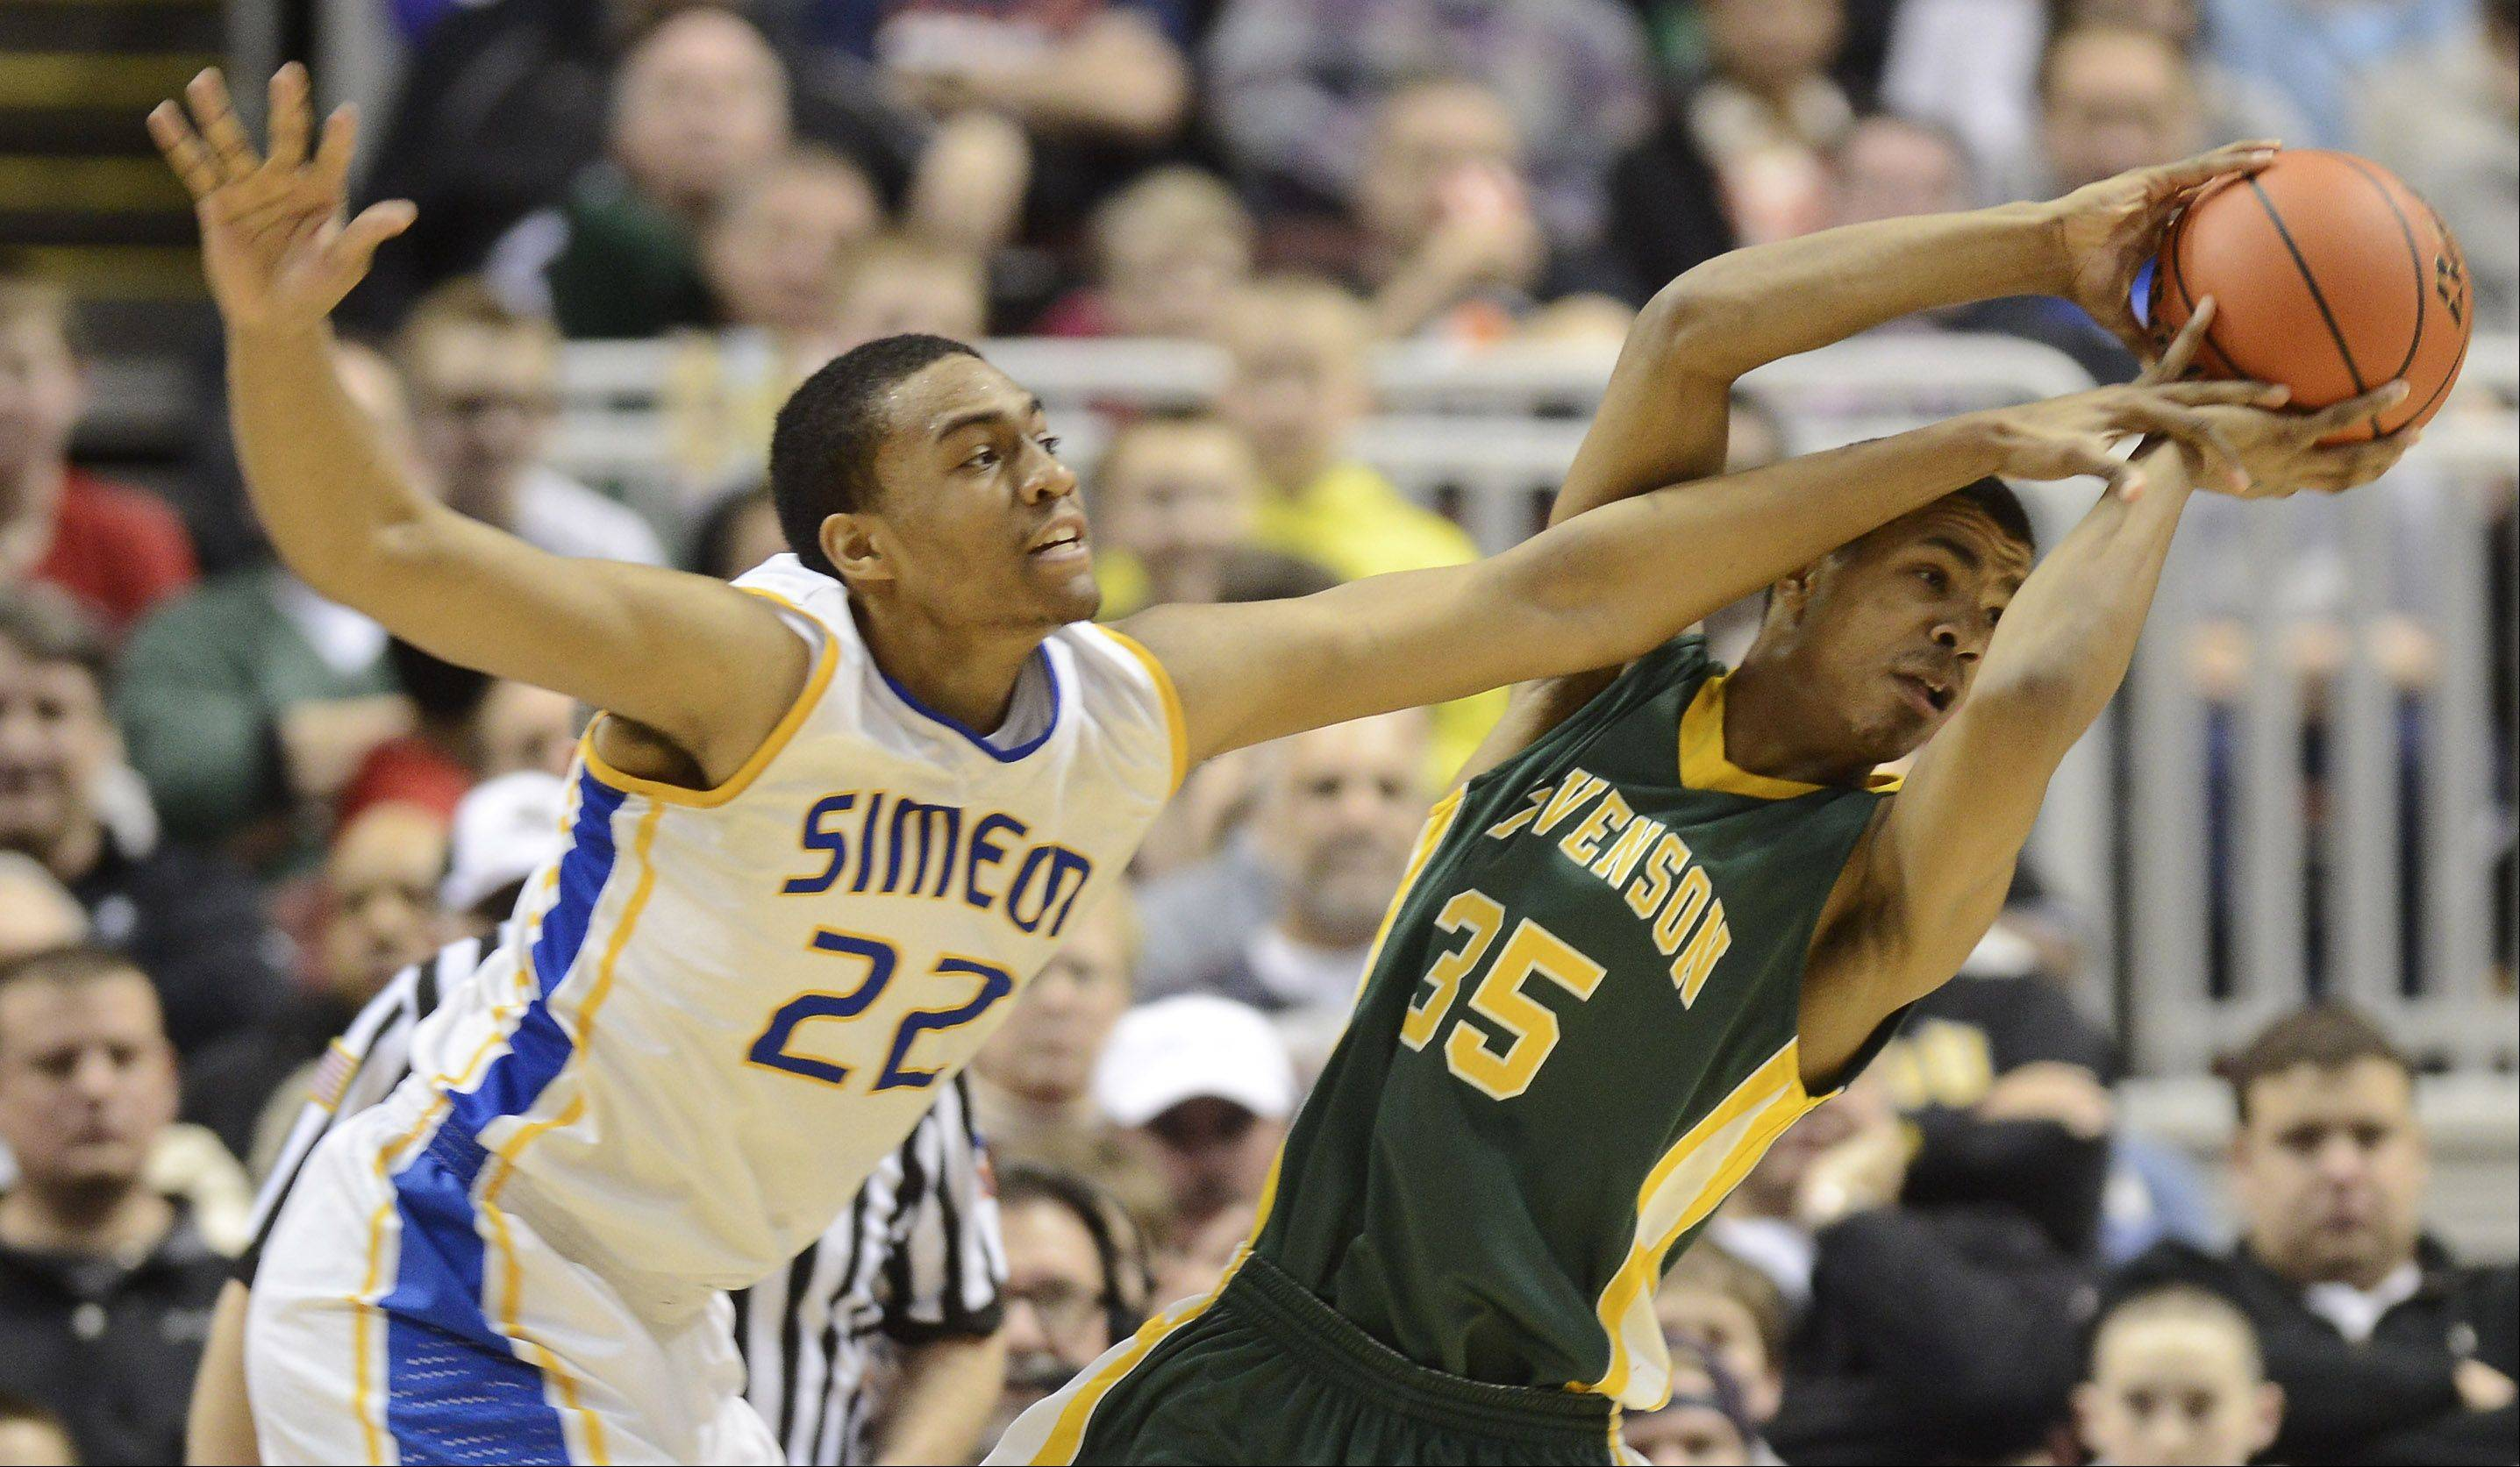 Stevenson's Connor Cashaw draws contact from Simeon's Jabari Parker during the class 4A boys basketball state finals at the Carver Arena in Peoria Saturday.